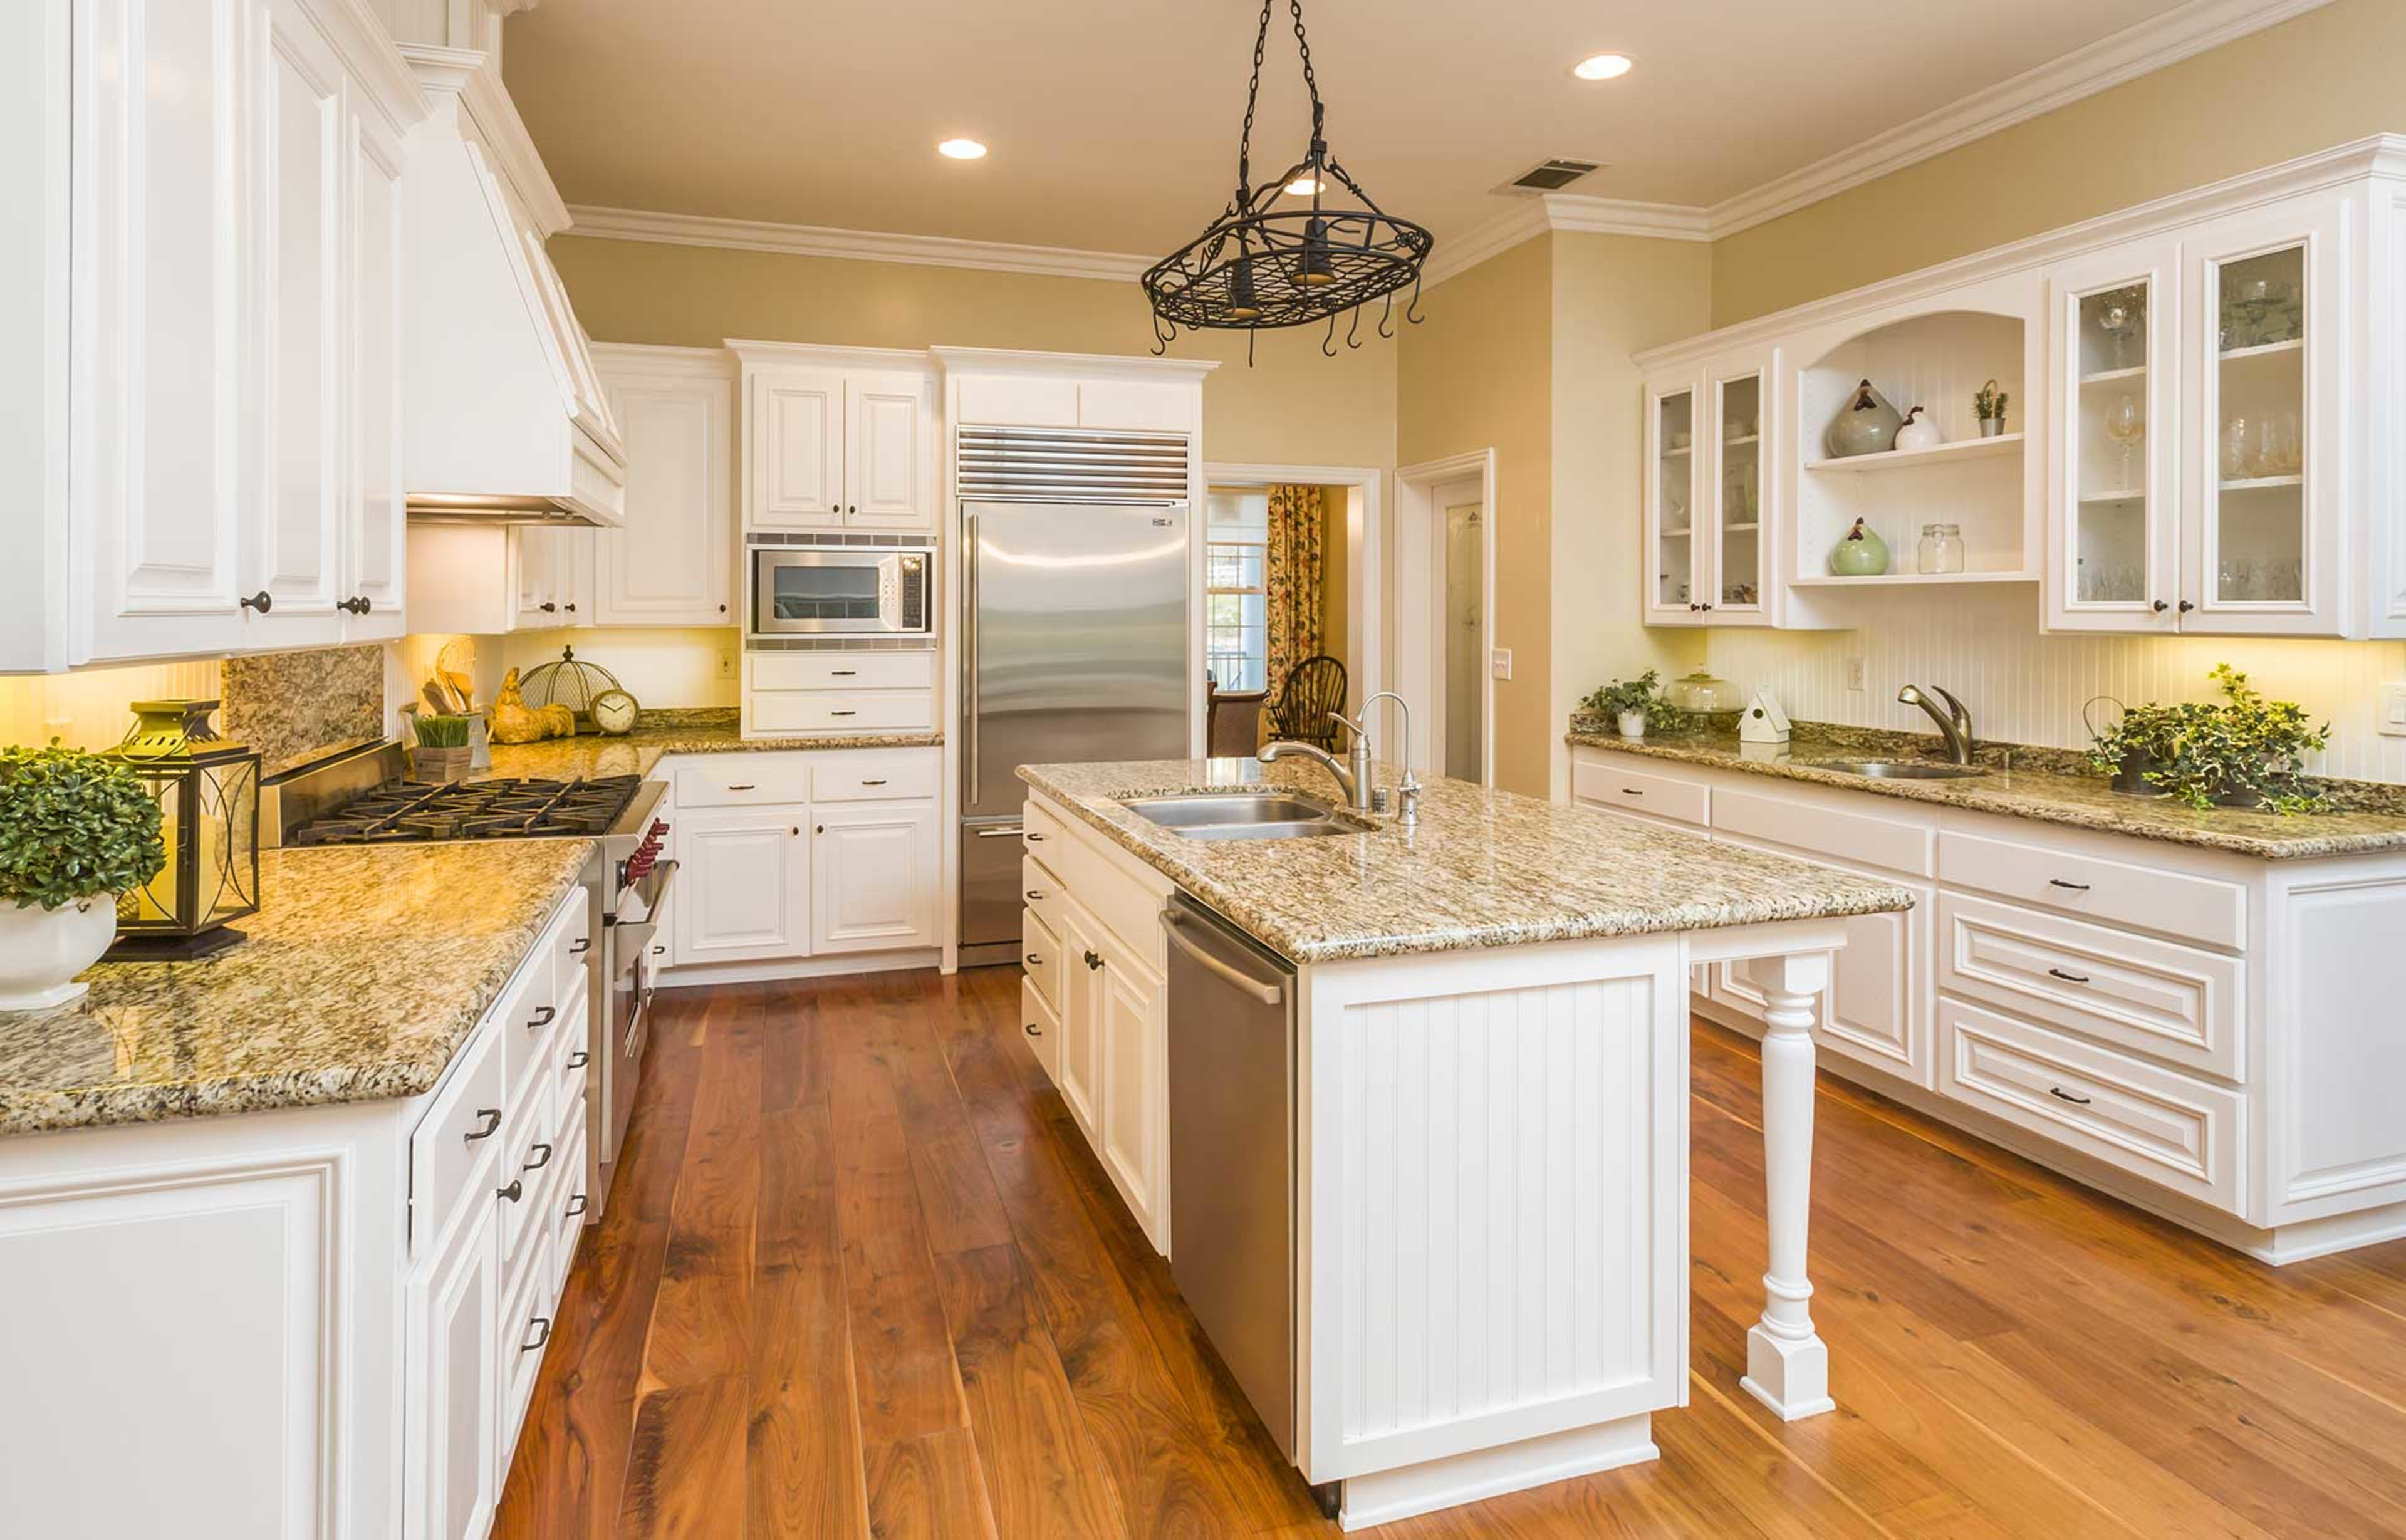 Bob Thompson South Bay Homes For Sale Ruskin Sun City Center Electric Panel Cherry Hill Edison Haddonfield Hightstown Lakewood 1